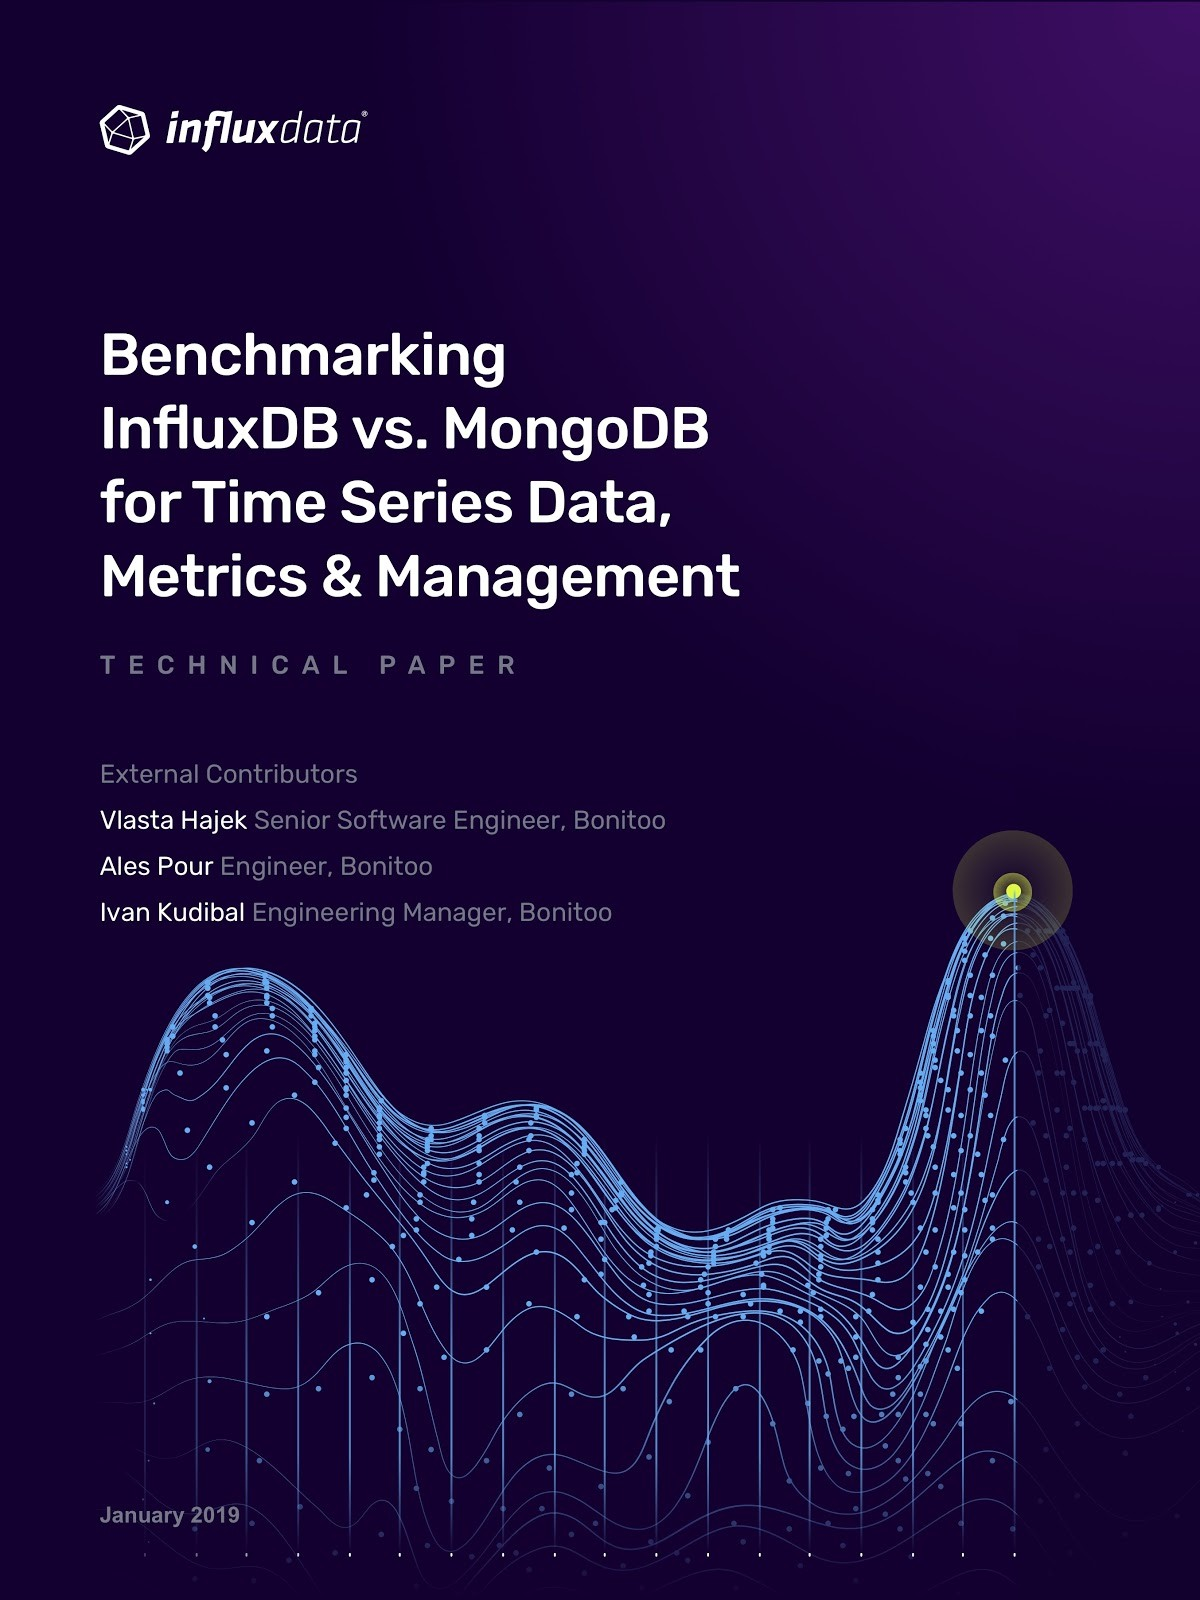 Why Time-Series DBs matter - see how InfluxDB outperforms MongoDB